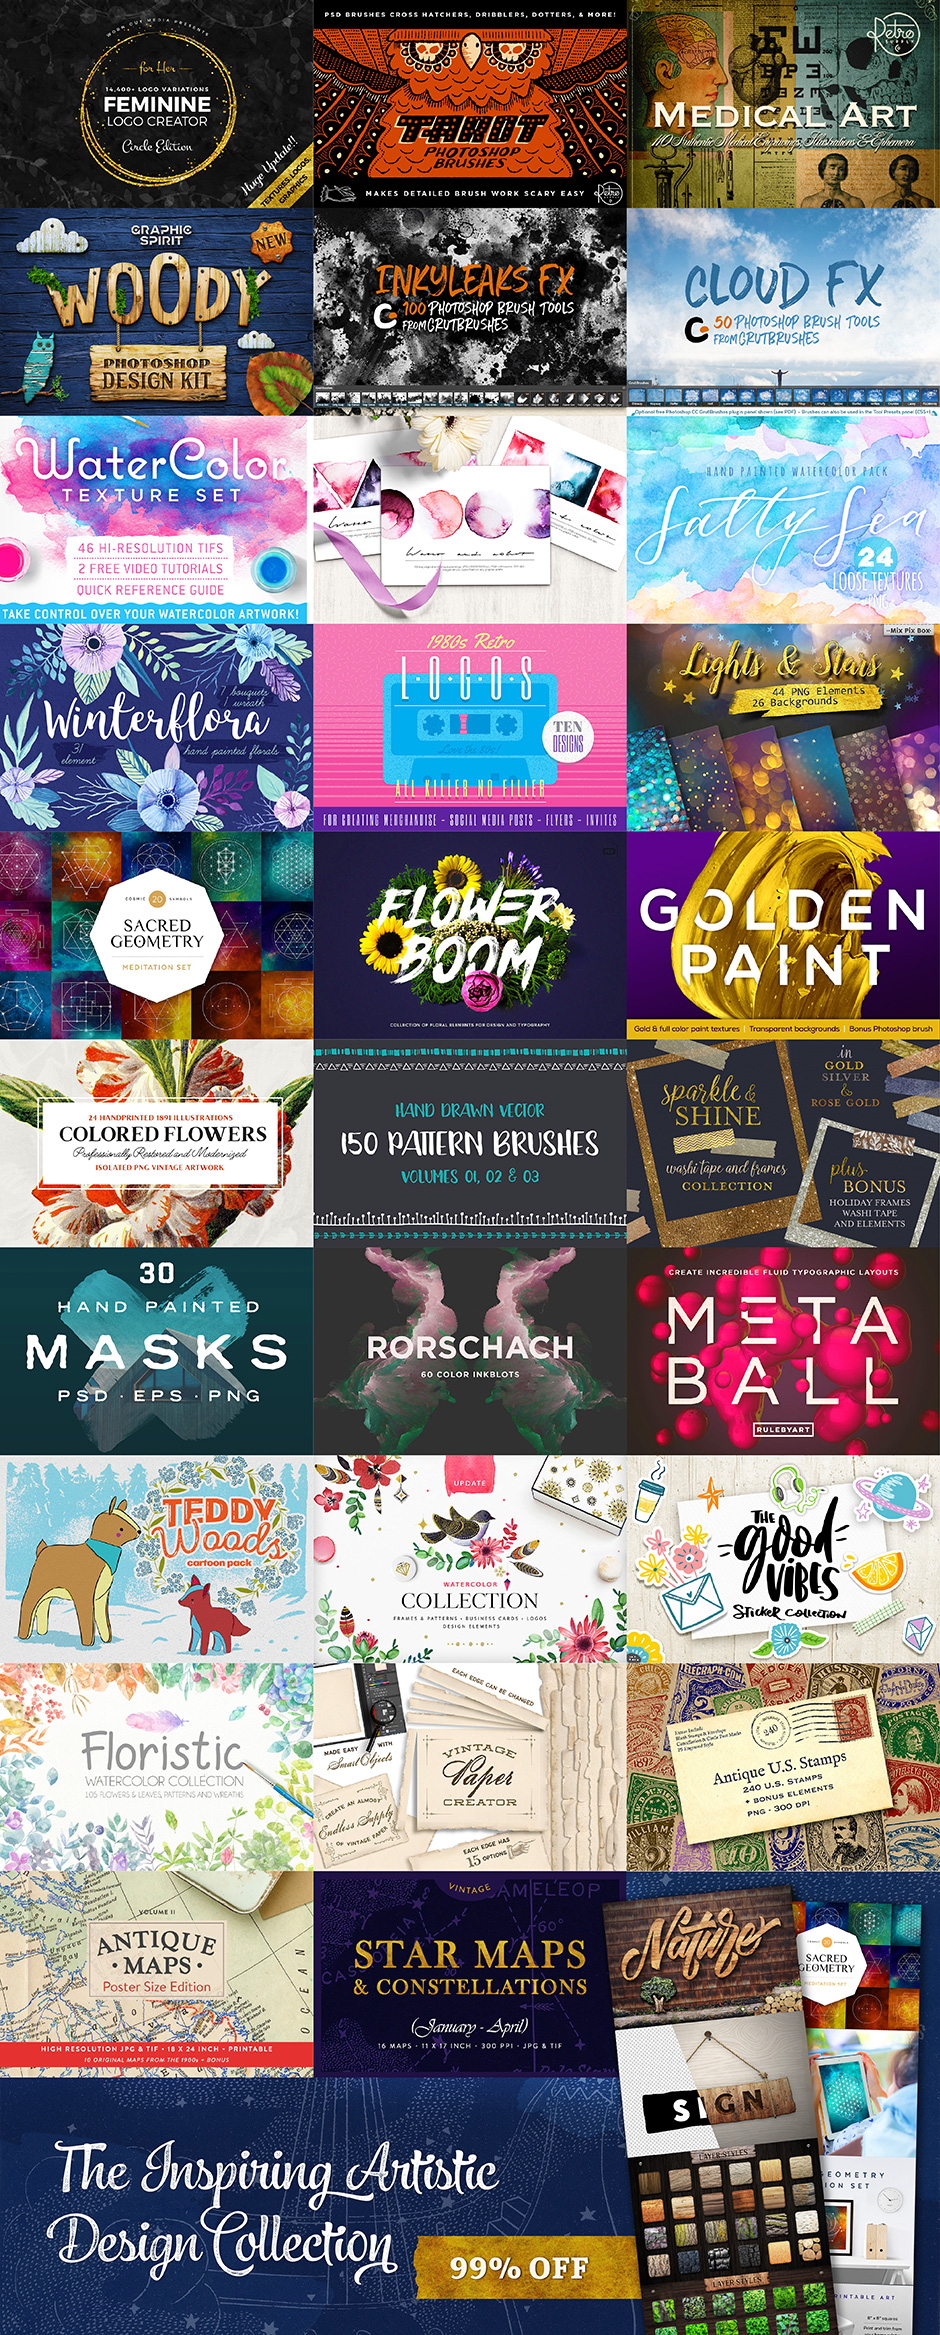 The Inspiring Artistic Design Collection